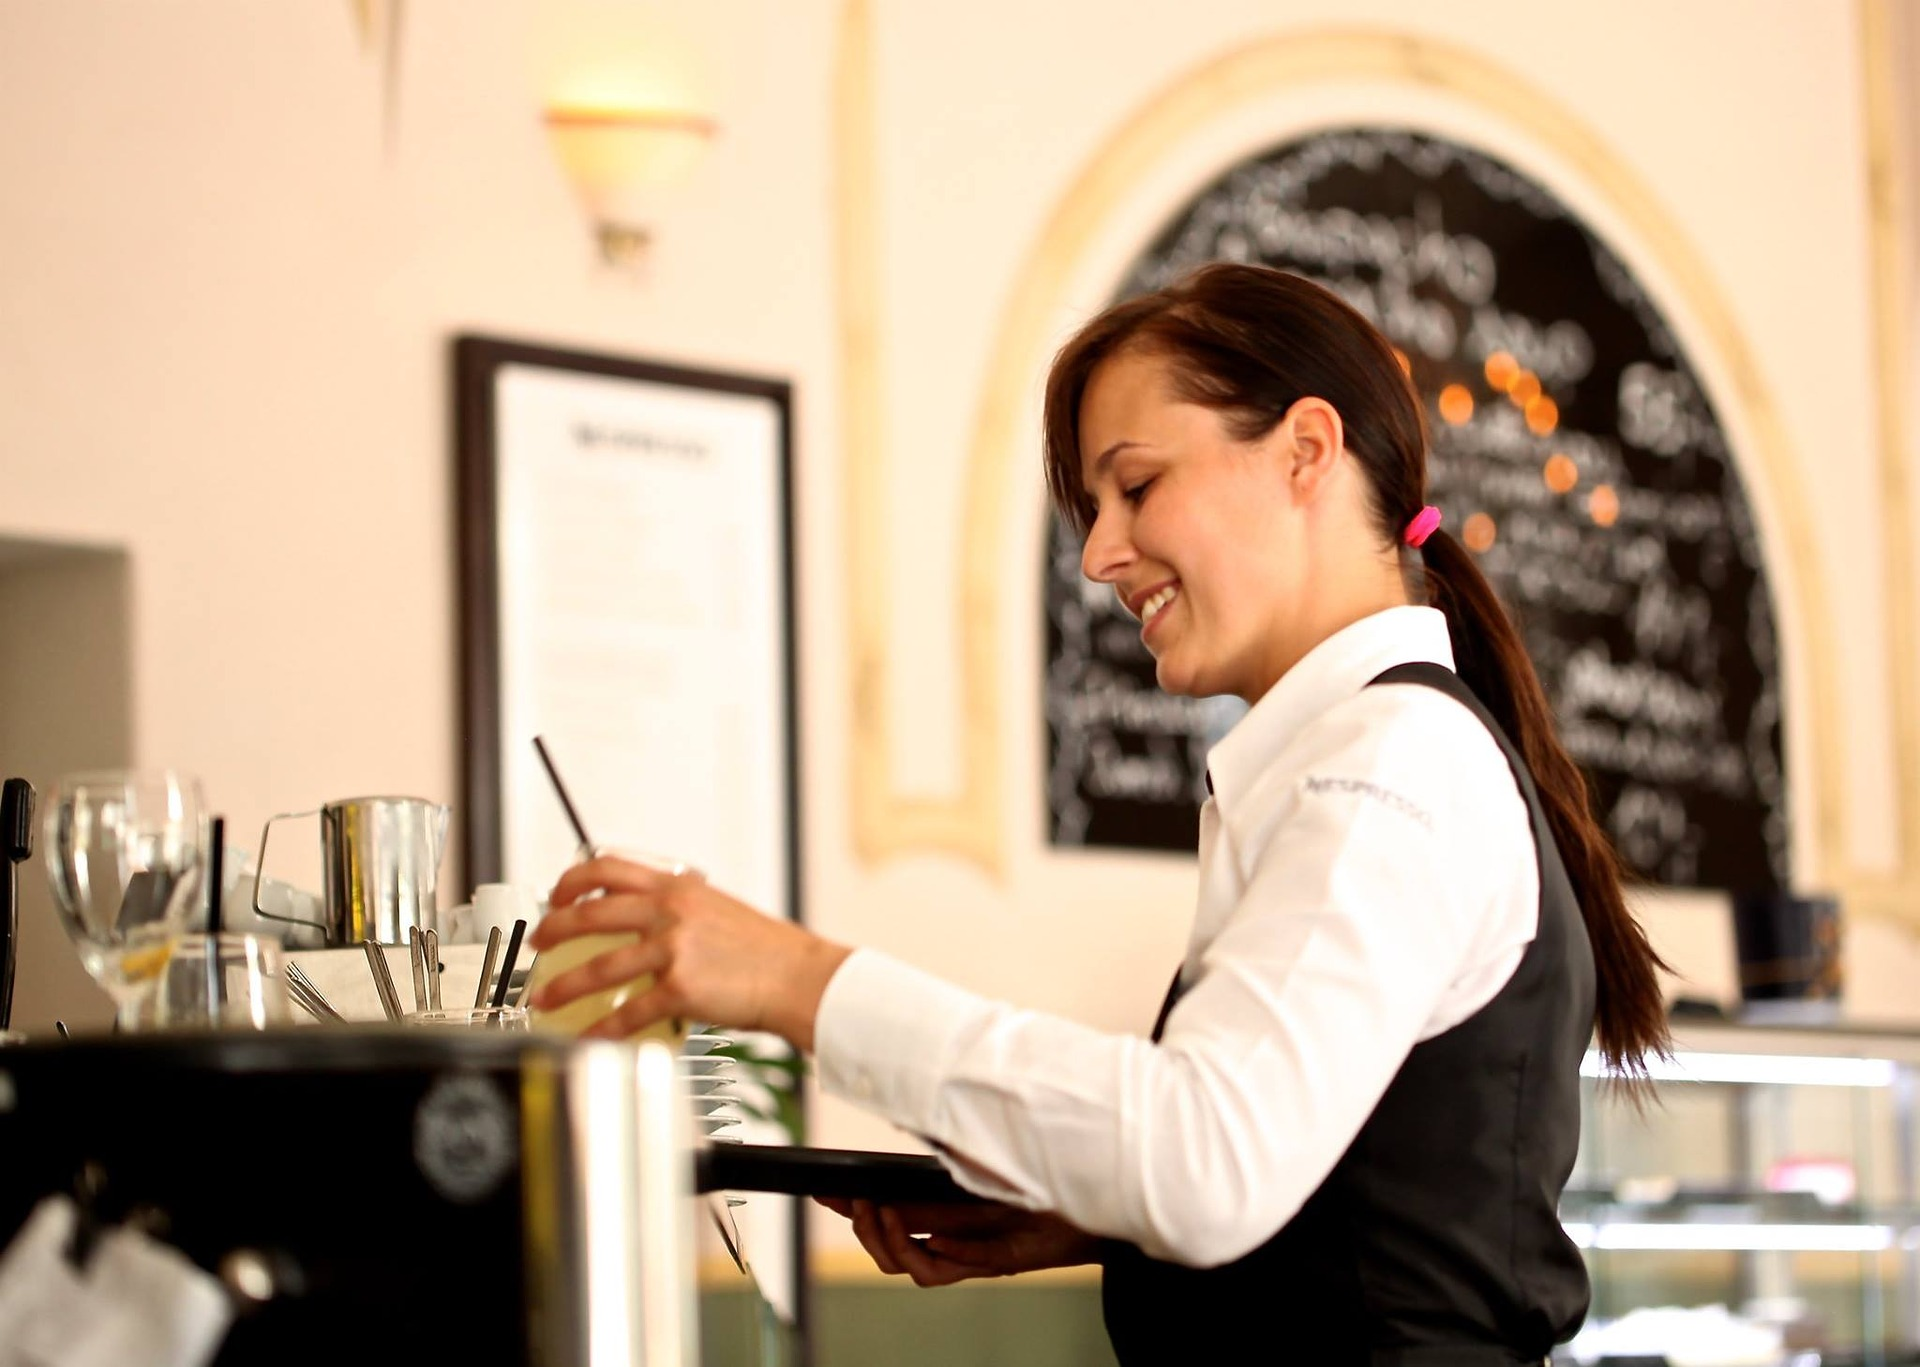 contactless-order-solution-for the-waiter allows to manage the orders : see the items chosen, payment If payed online), get the tips online within the bill